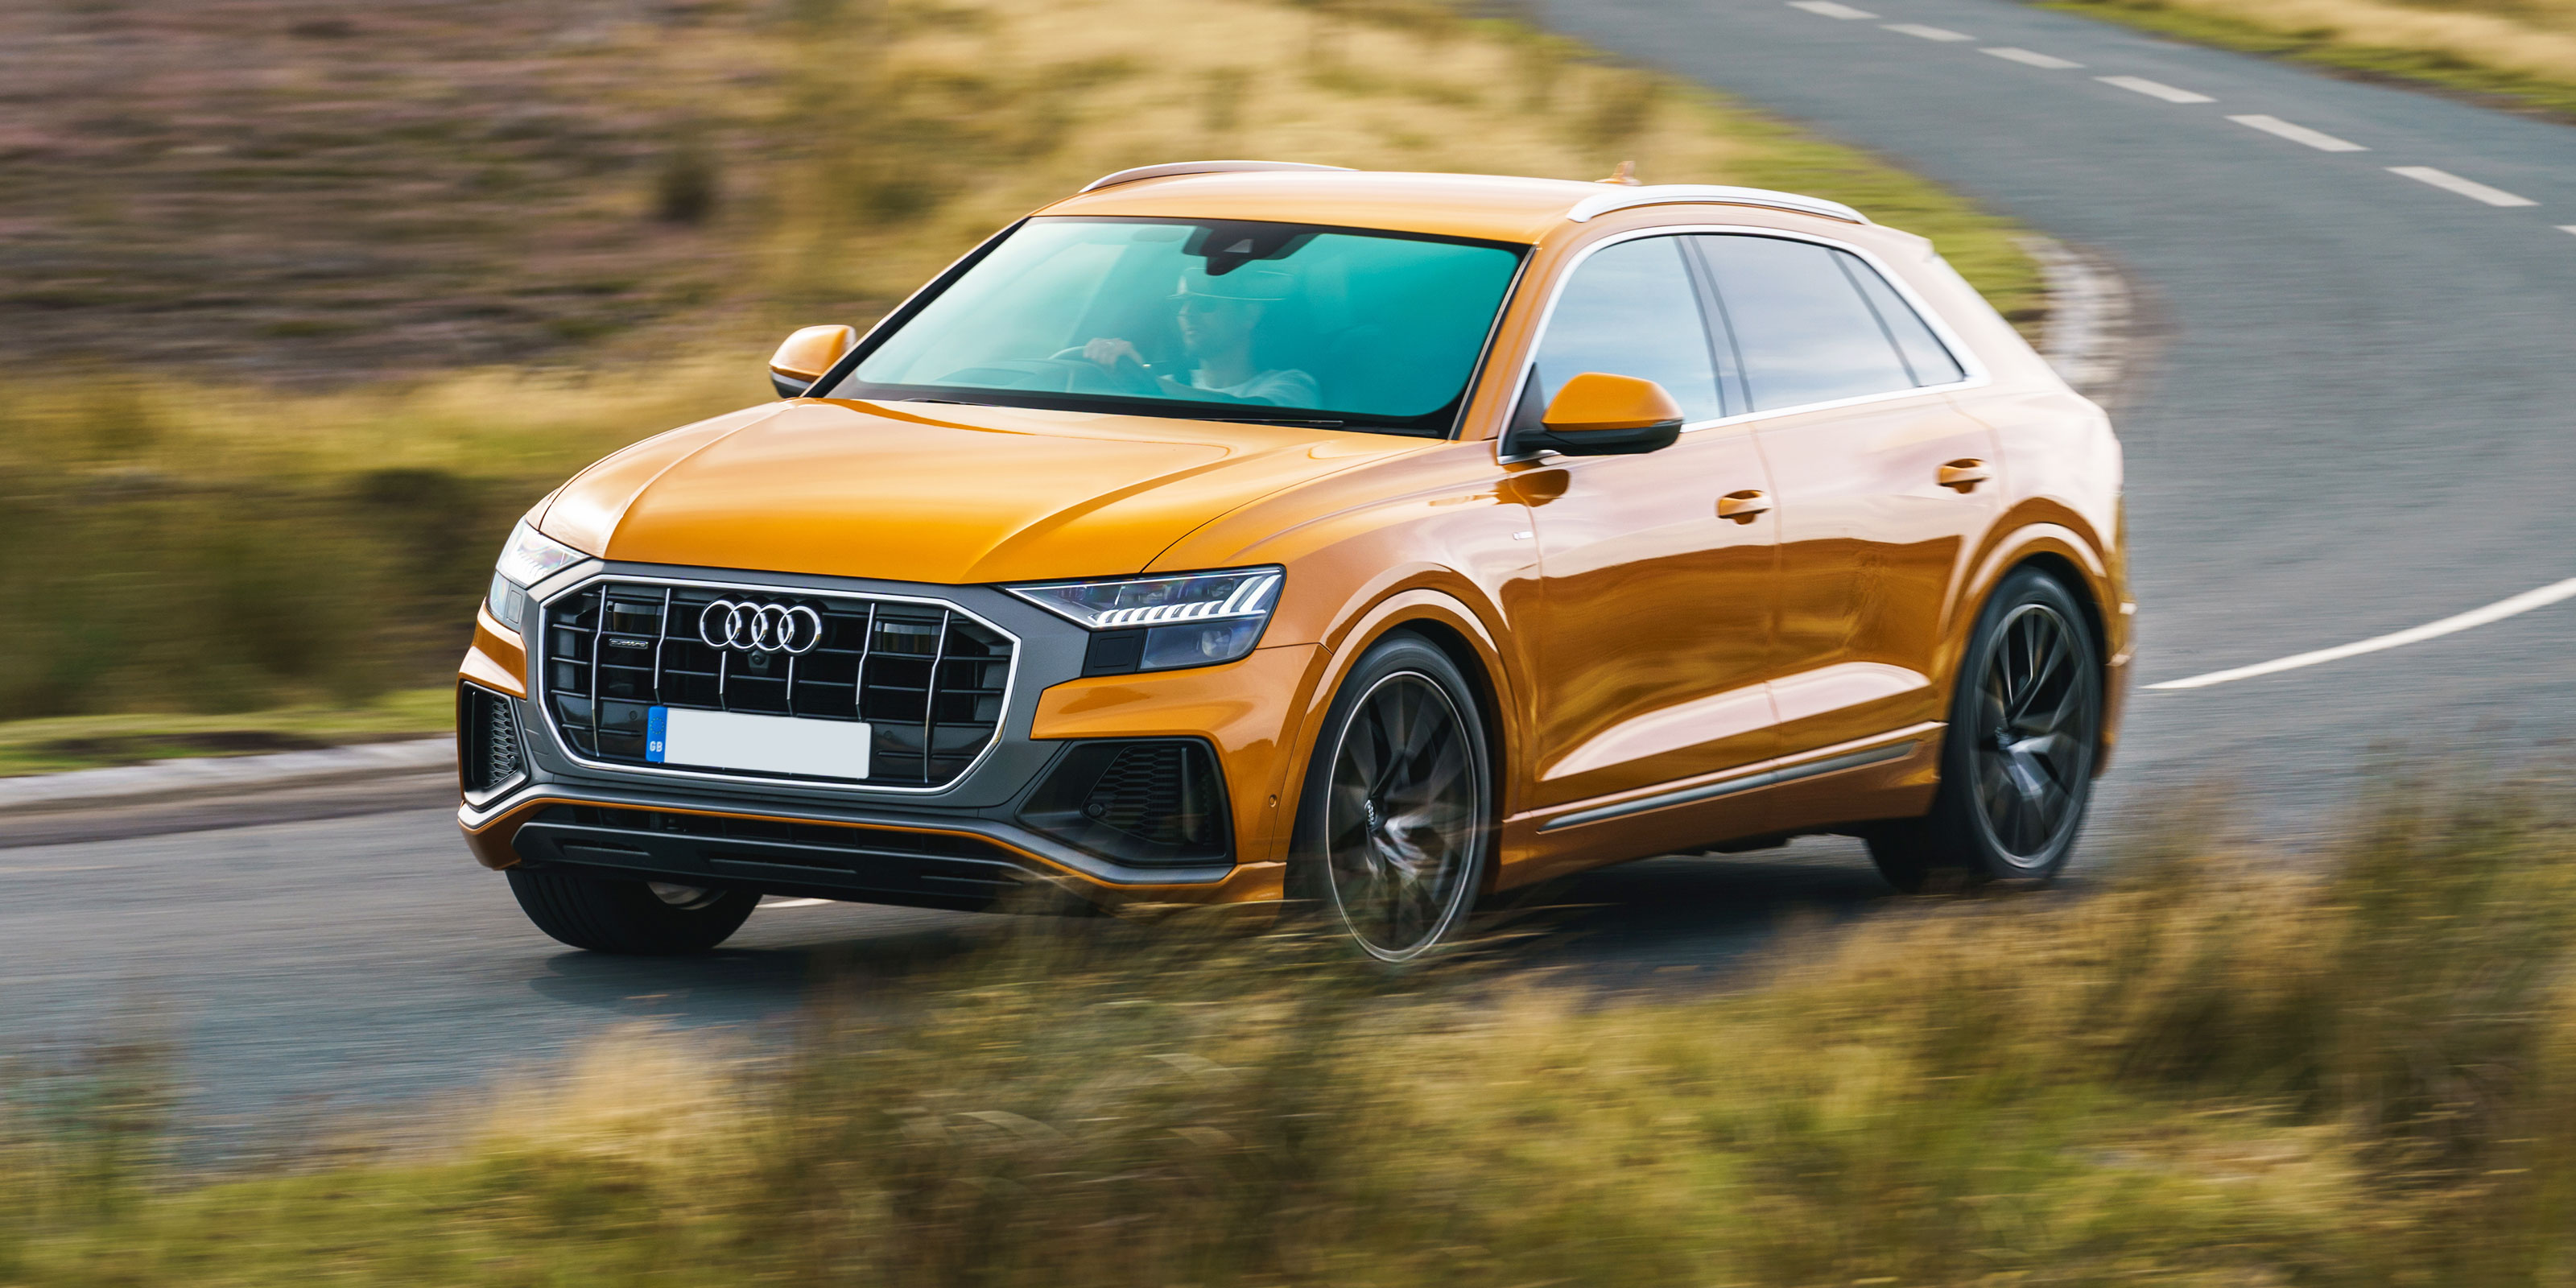 2020 Audi Q8 Design, Interior, And Price >> New Audi Q8 Review Carwow